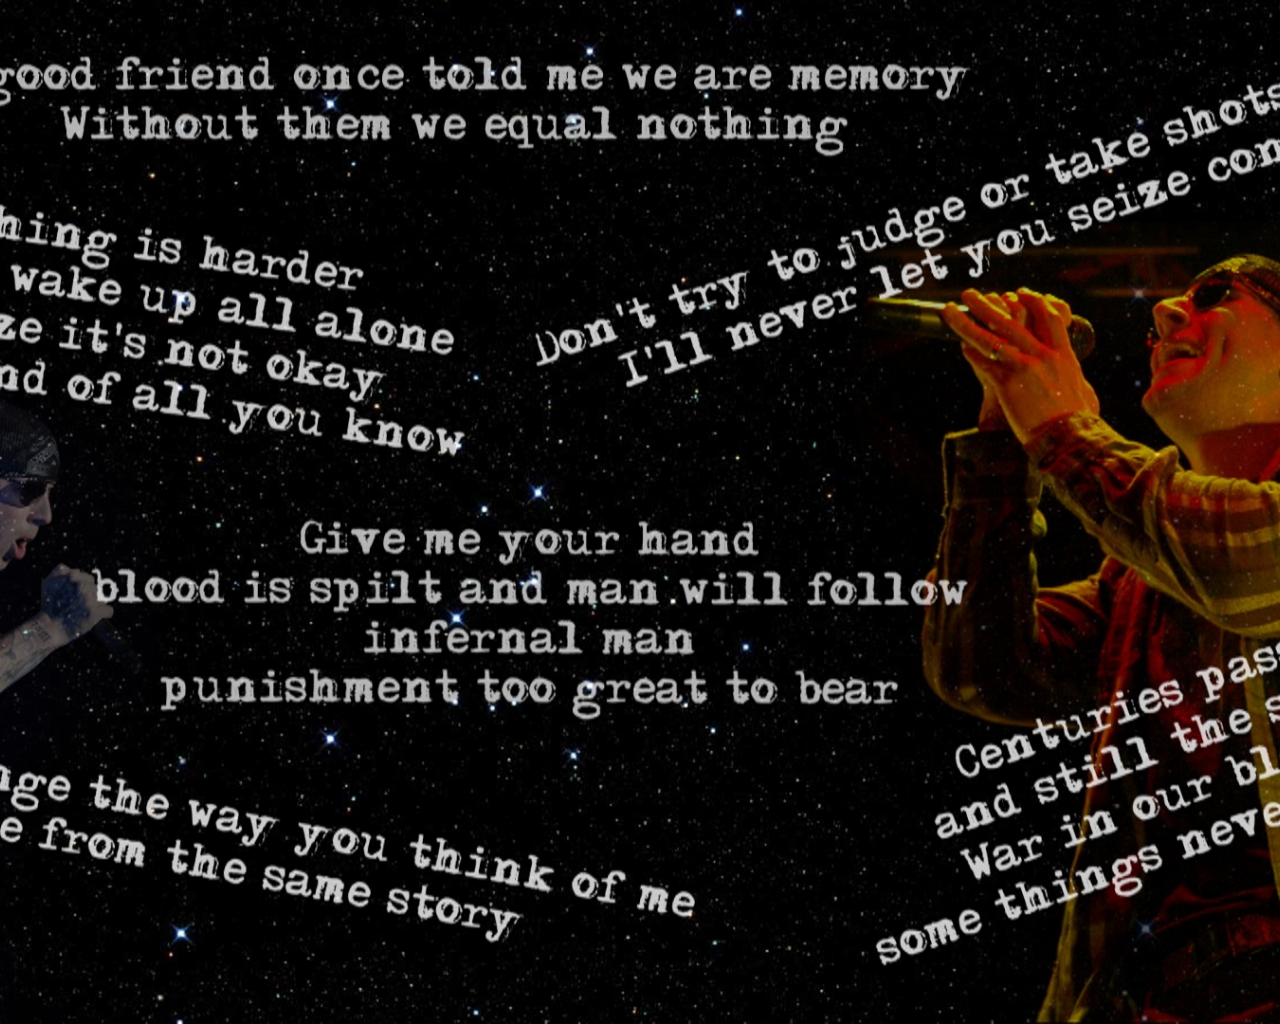 Free download M Shadows wallpaper with lyrics by Feargm